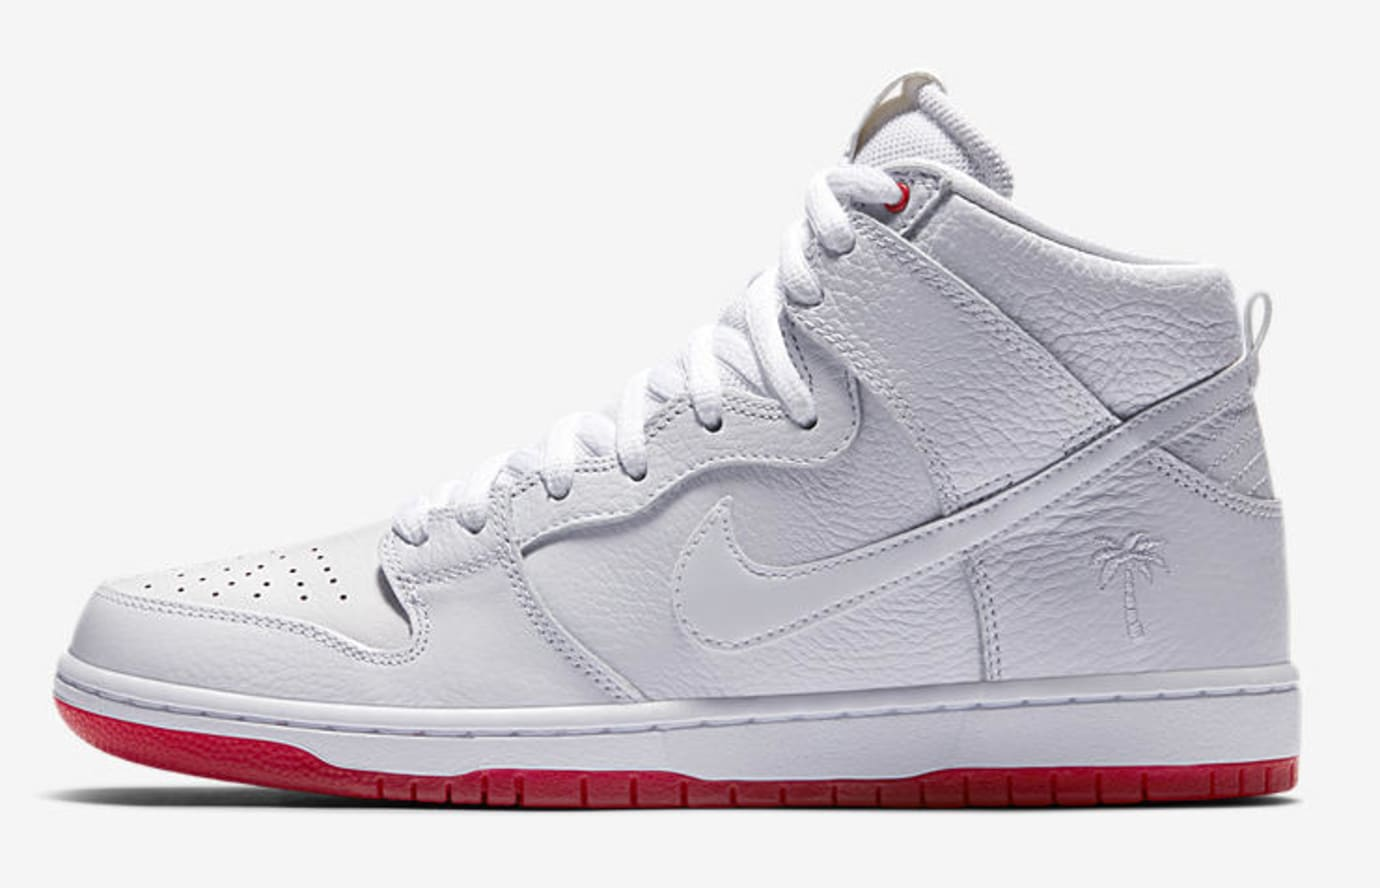 finest selection 8c11a df260 Nike SB 'Kevin Bradley' Dunk High Pro AH9613-116 Air Force ...